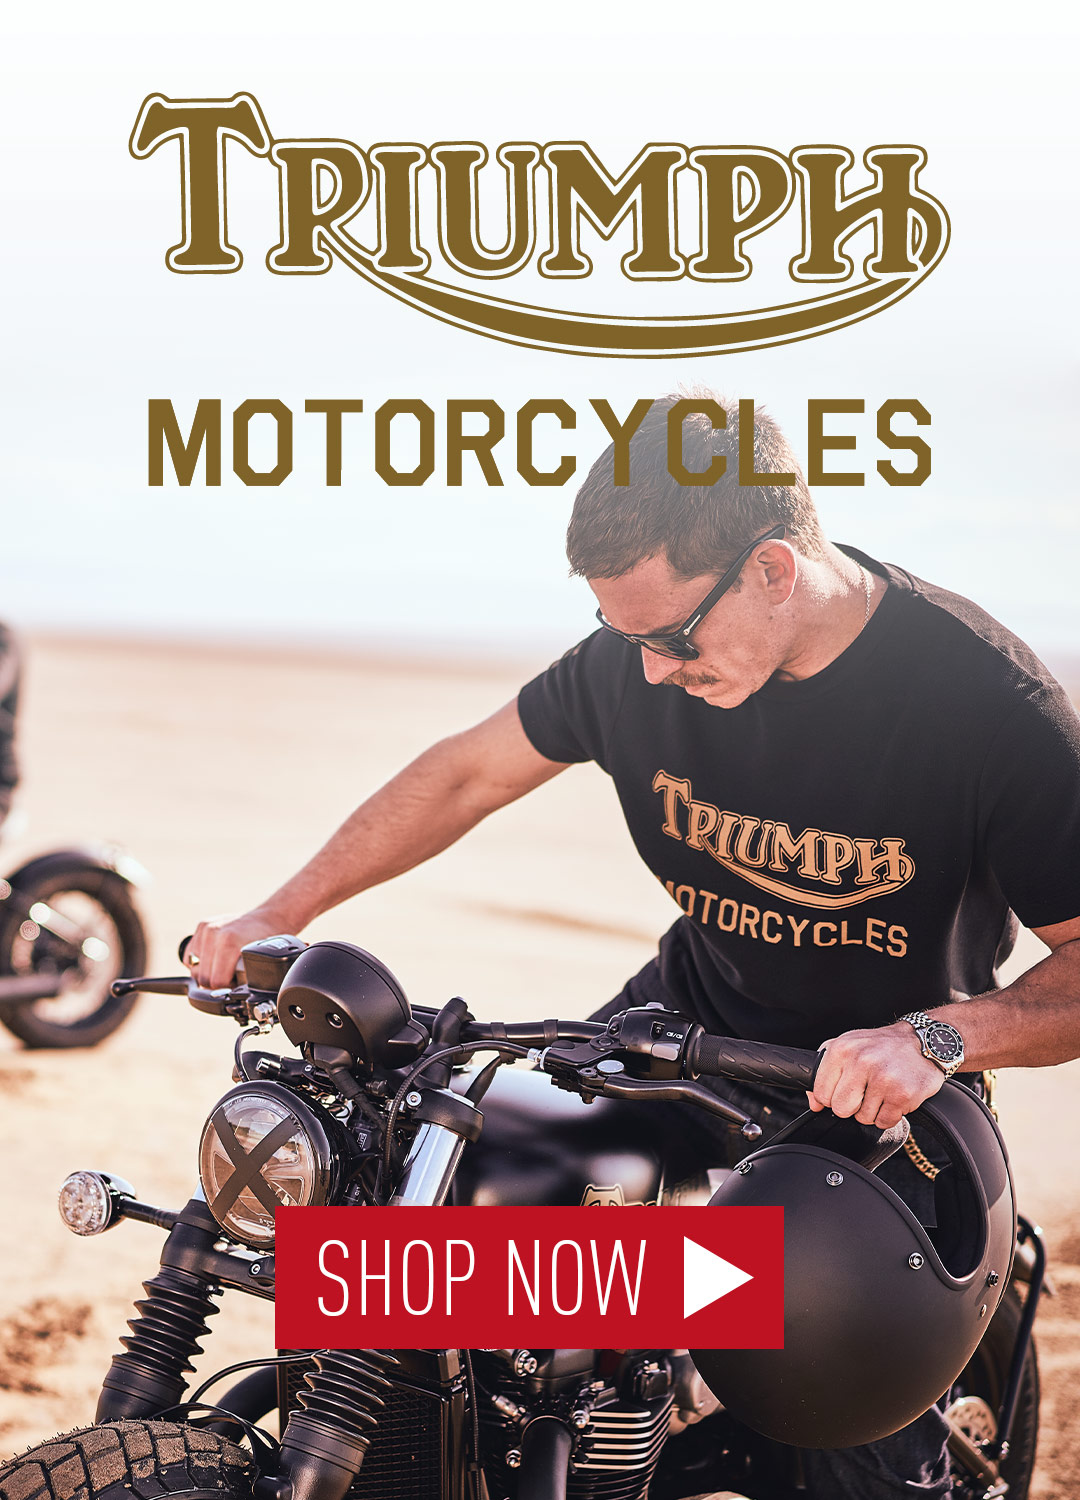 New Triumph Motorcycles clothing collection